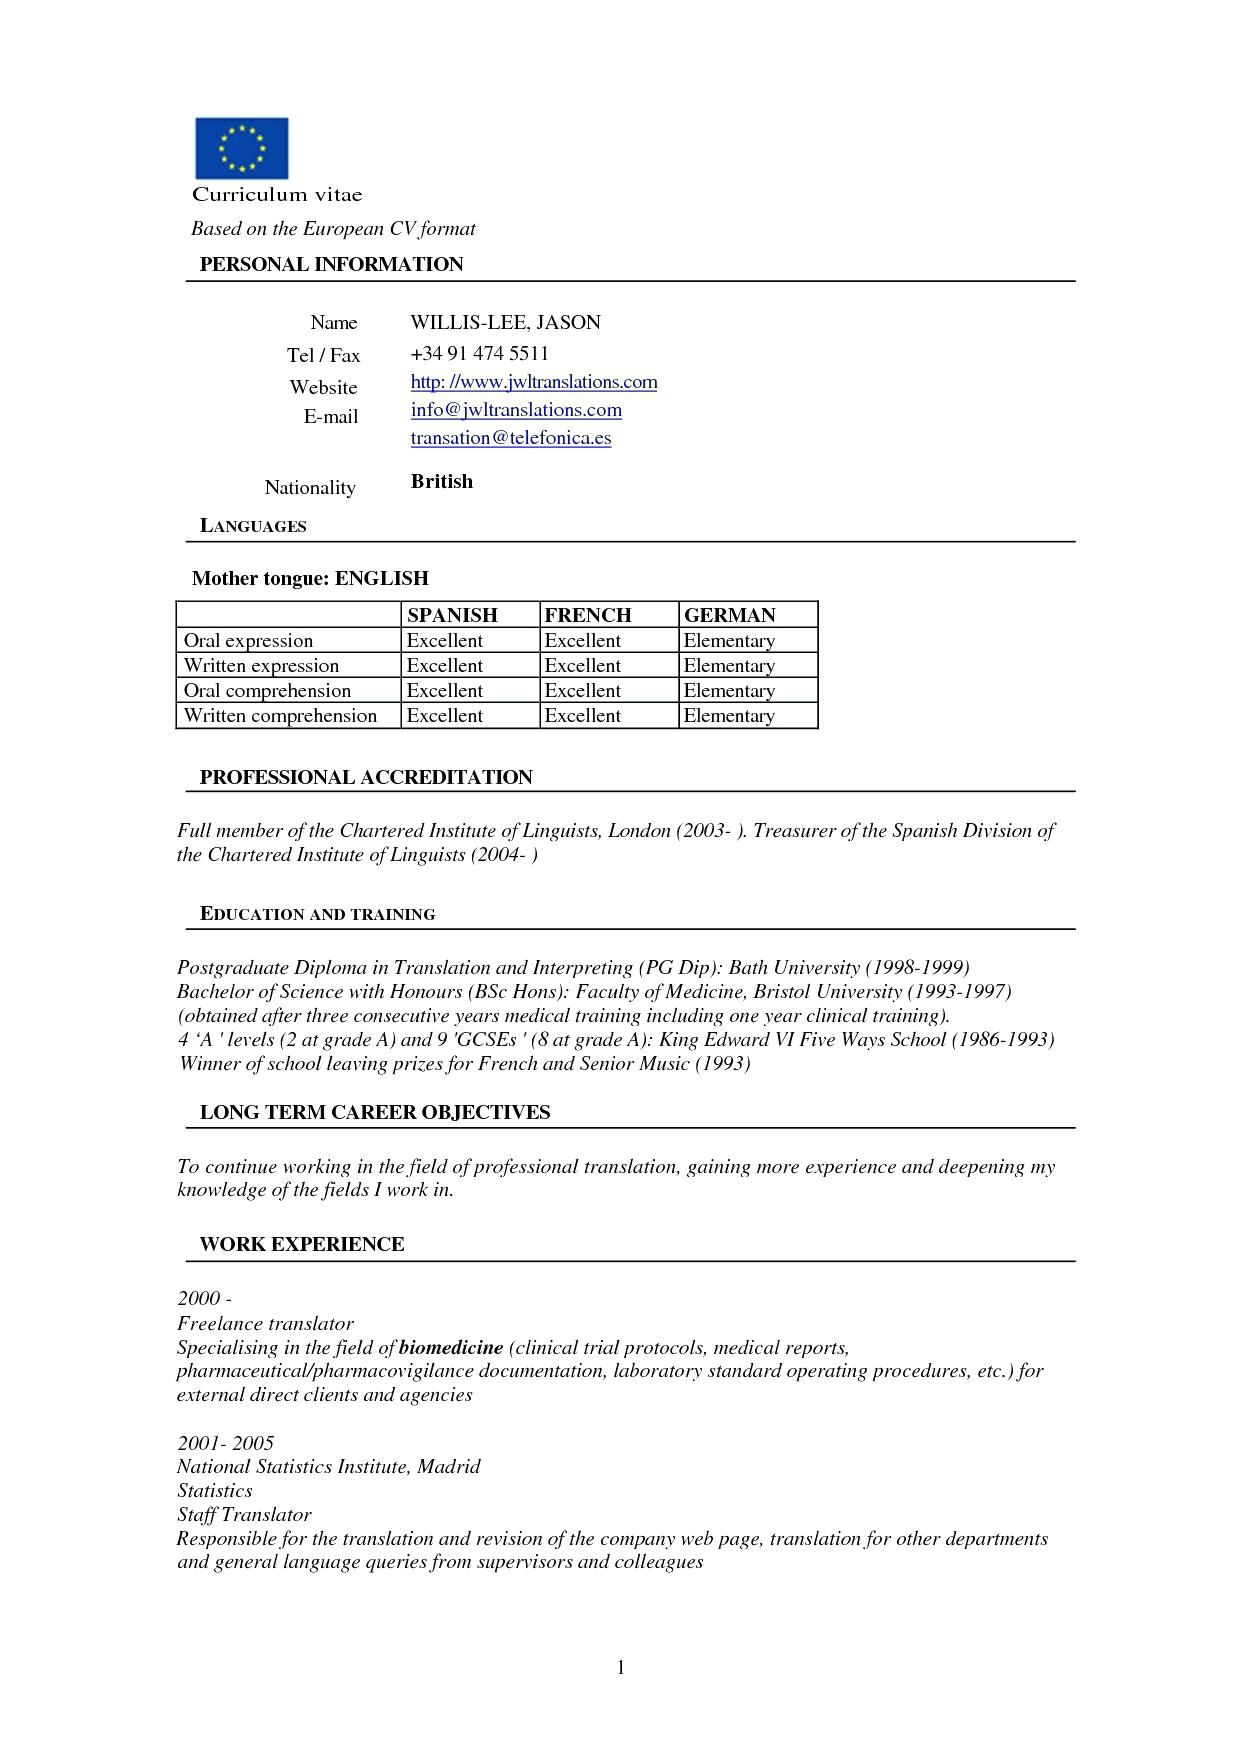 pharmacy resume format for freshers templates template word headline rest api business rn Resume Resume Headline For Pharmacy Freshers